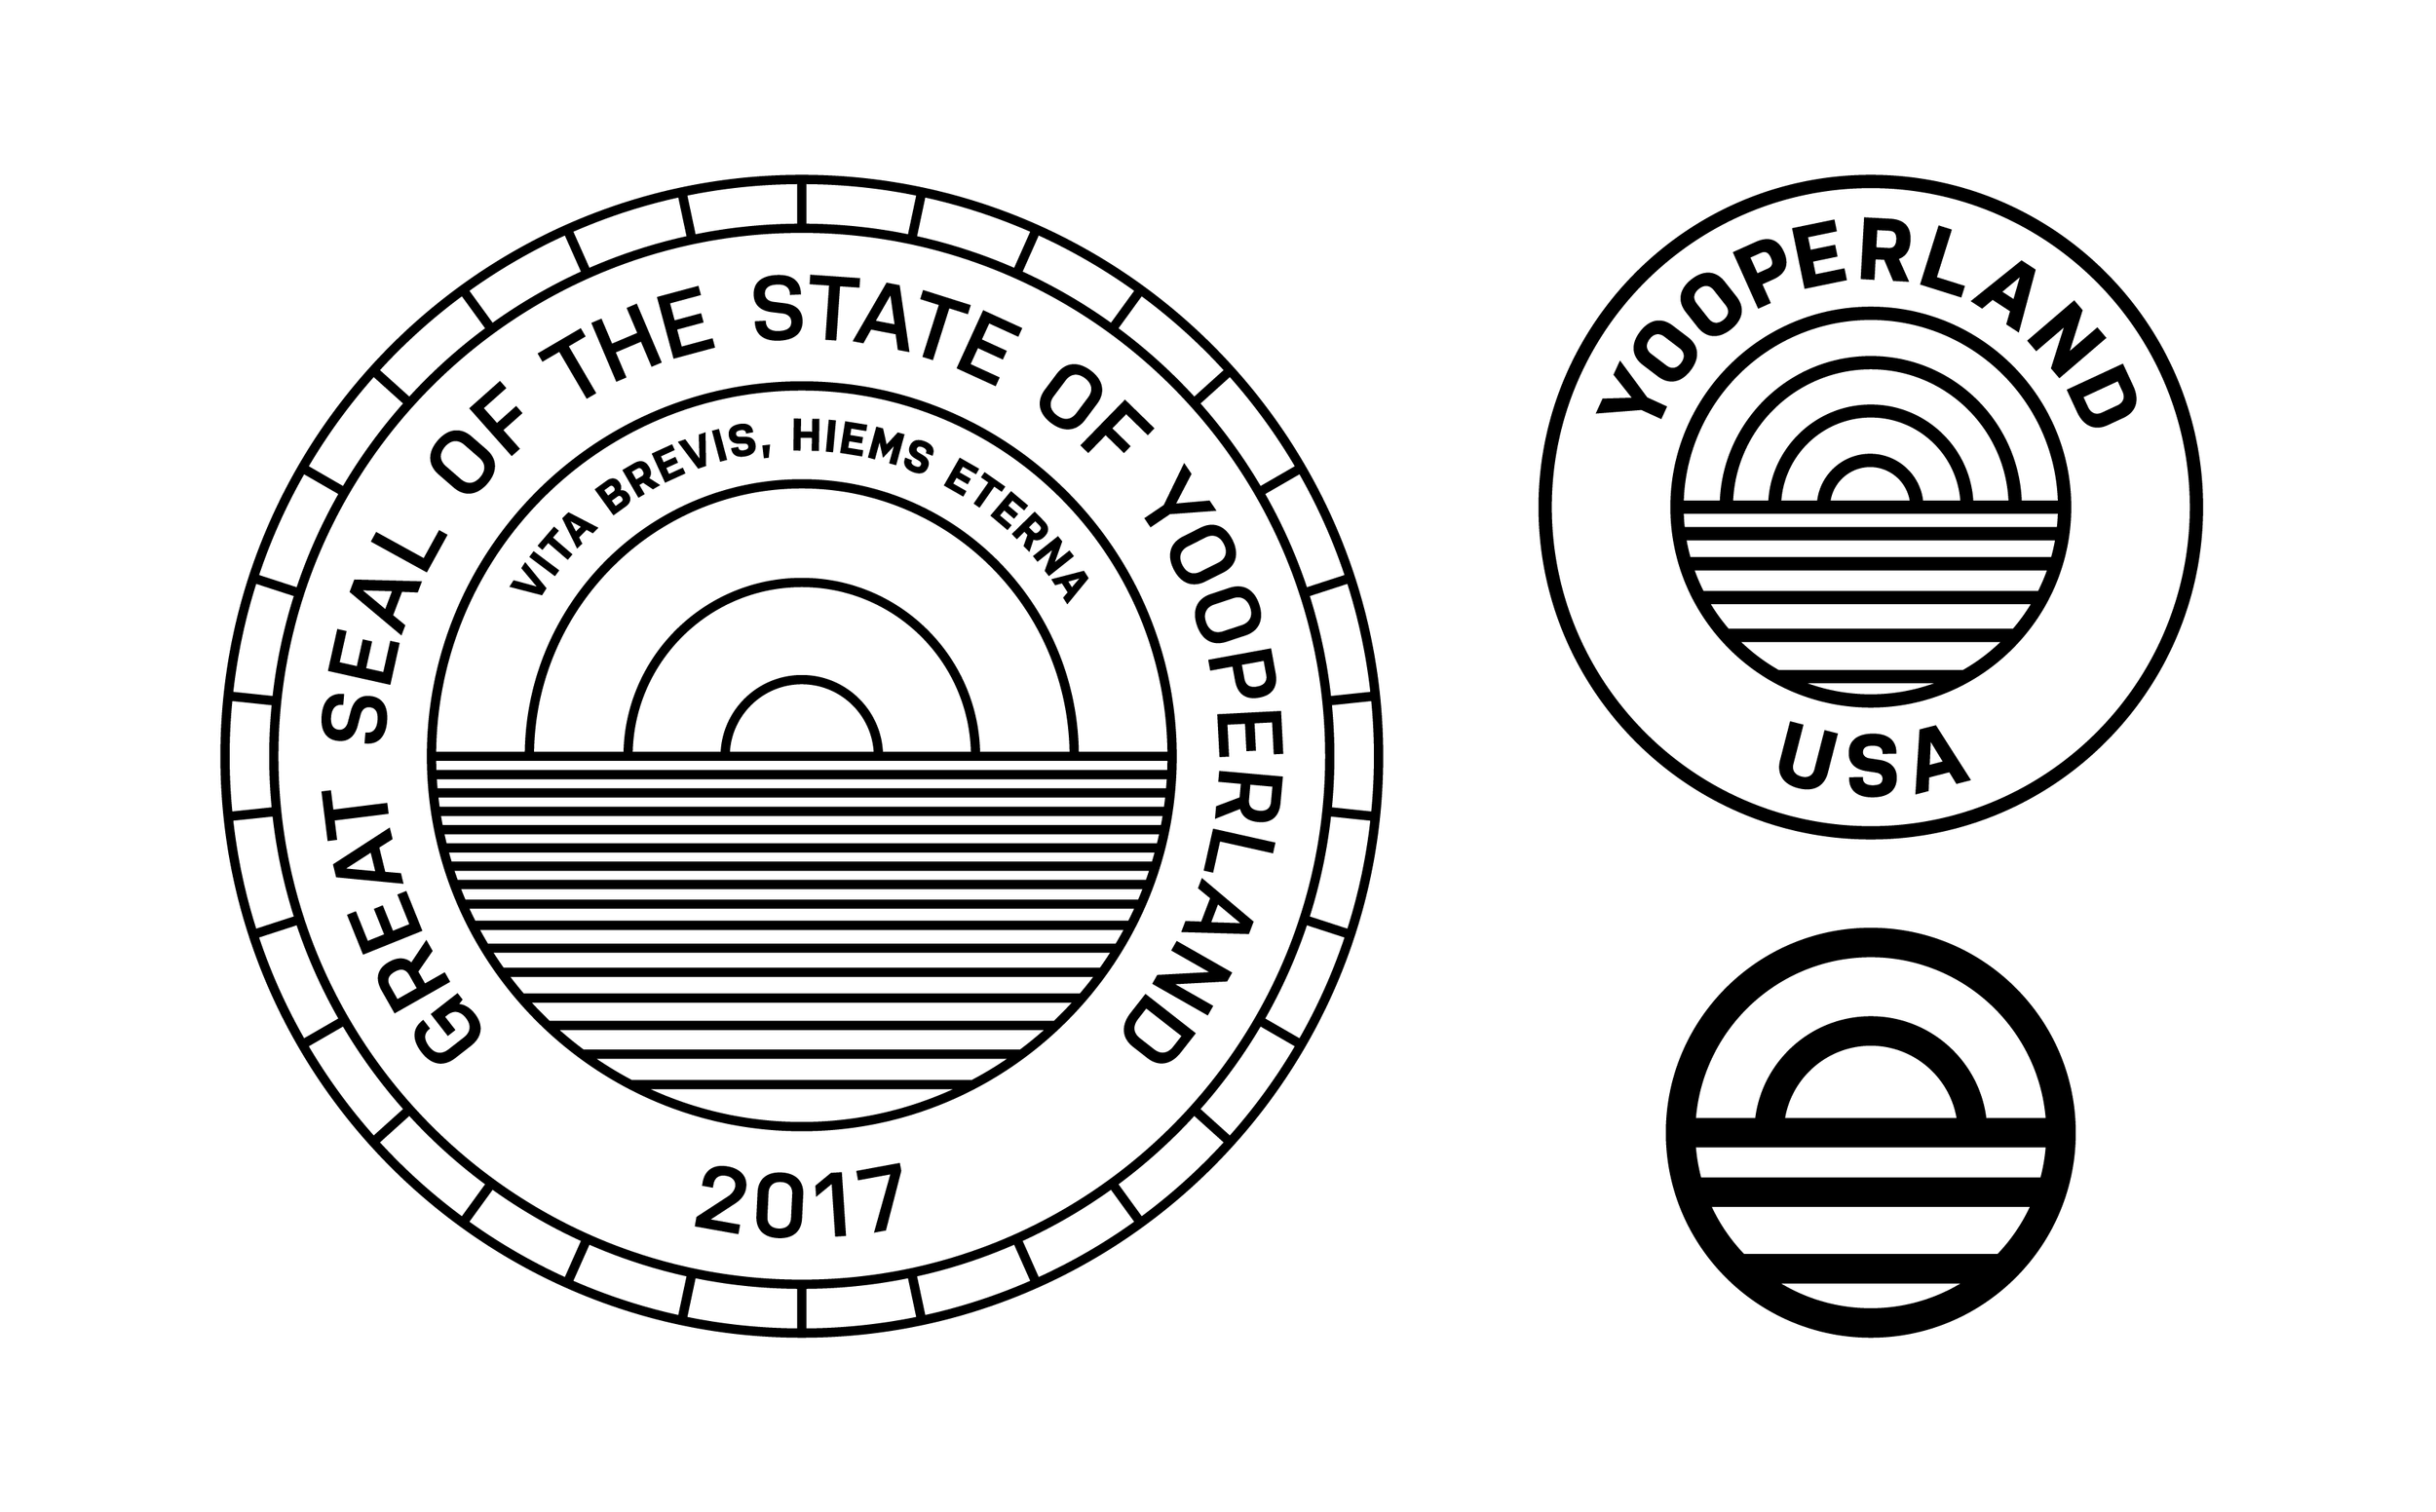 Final design for the Great Seal of The State of Yooperland. I then created two smaller icons to be used in conjunction with the seal for marketing and branding purposes.